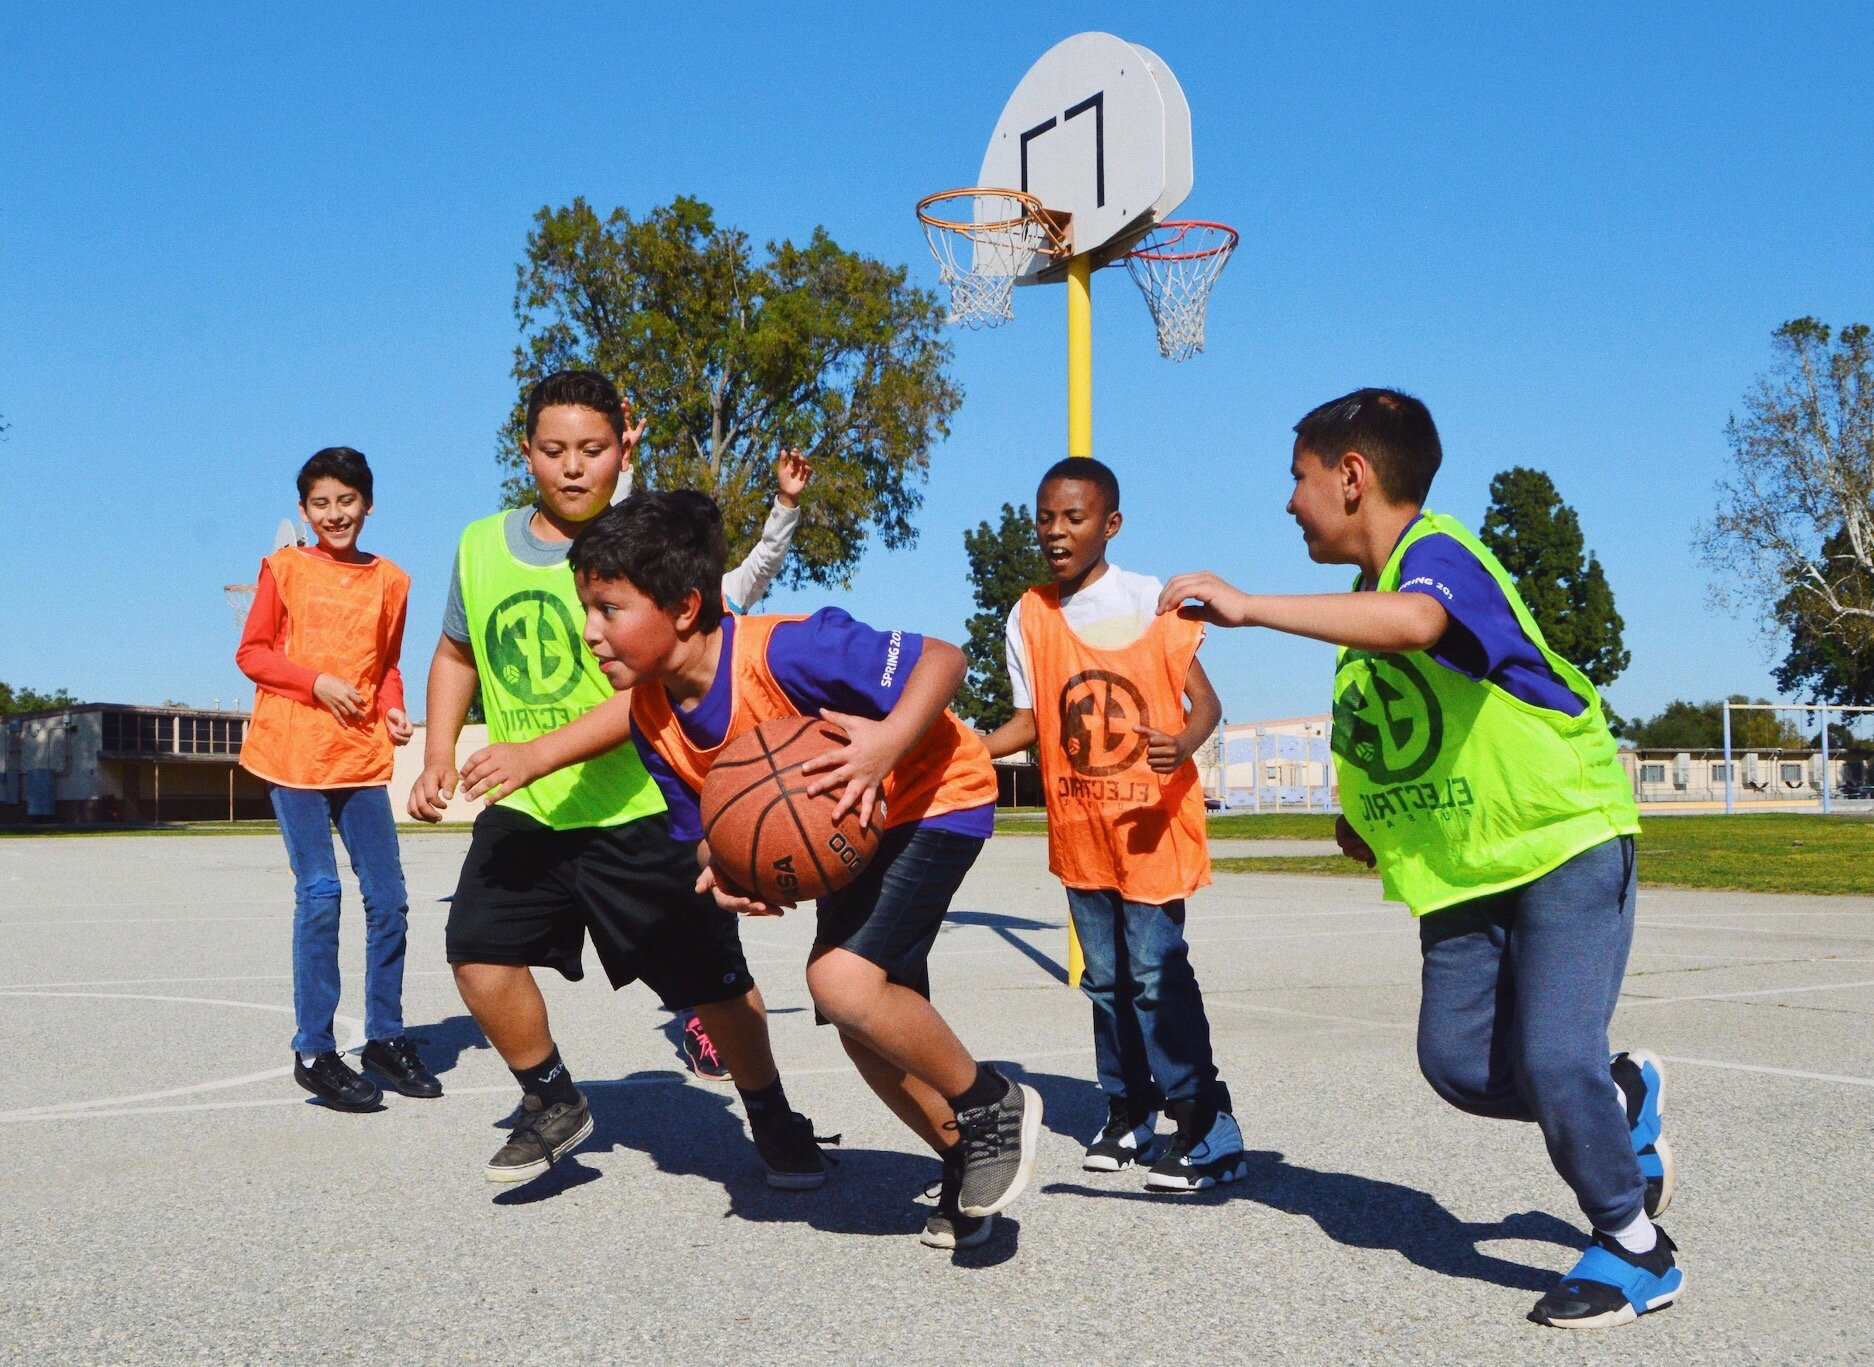 Register - HFA's after-school sports programs are open to all boys and girls in grades 1-5. Learn more about our programs' locations and times.